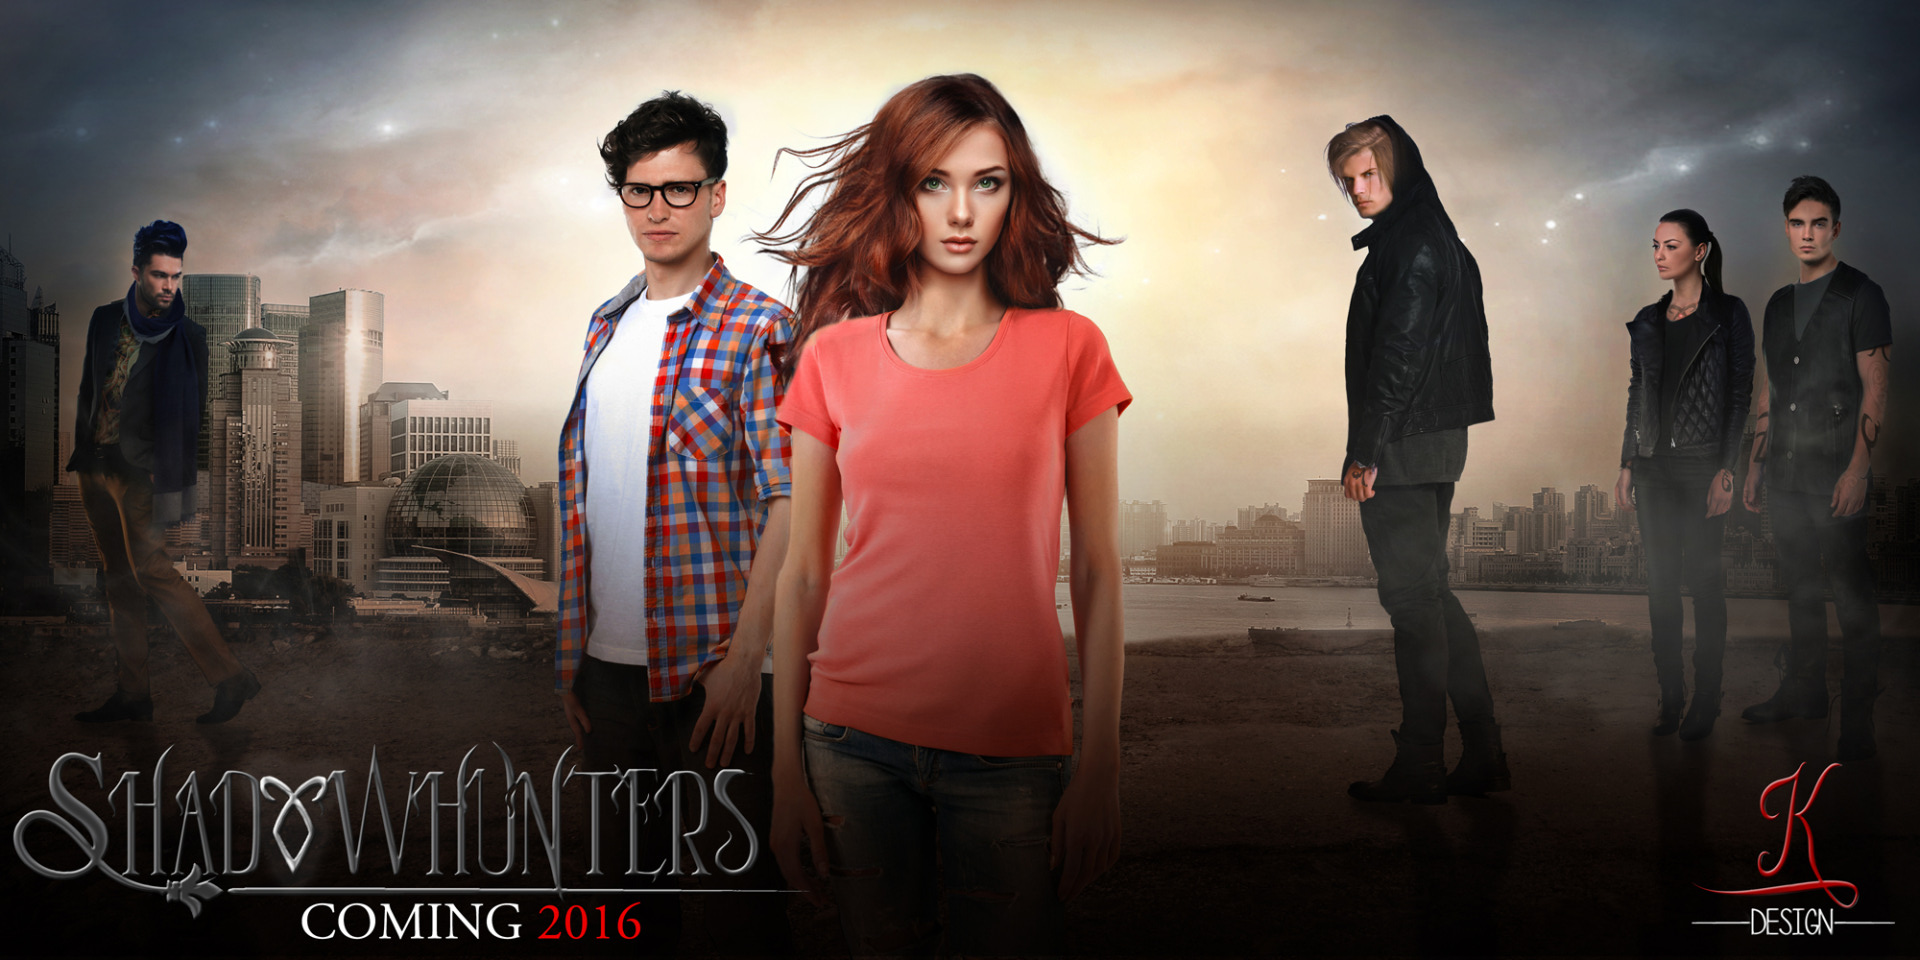 Shadowhunters ~ TV 显示 FanMade Poster